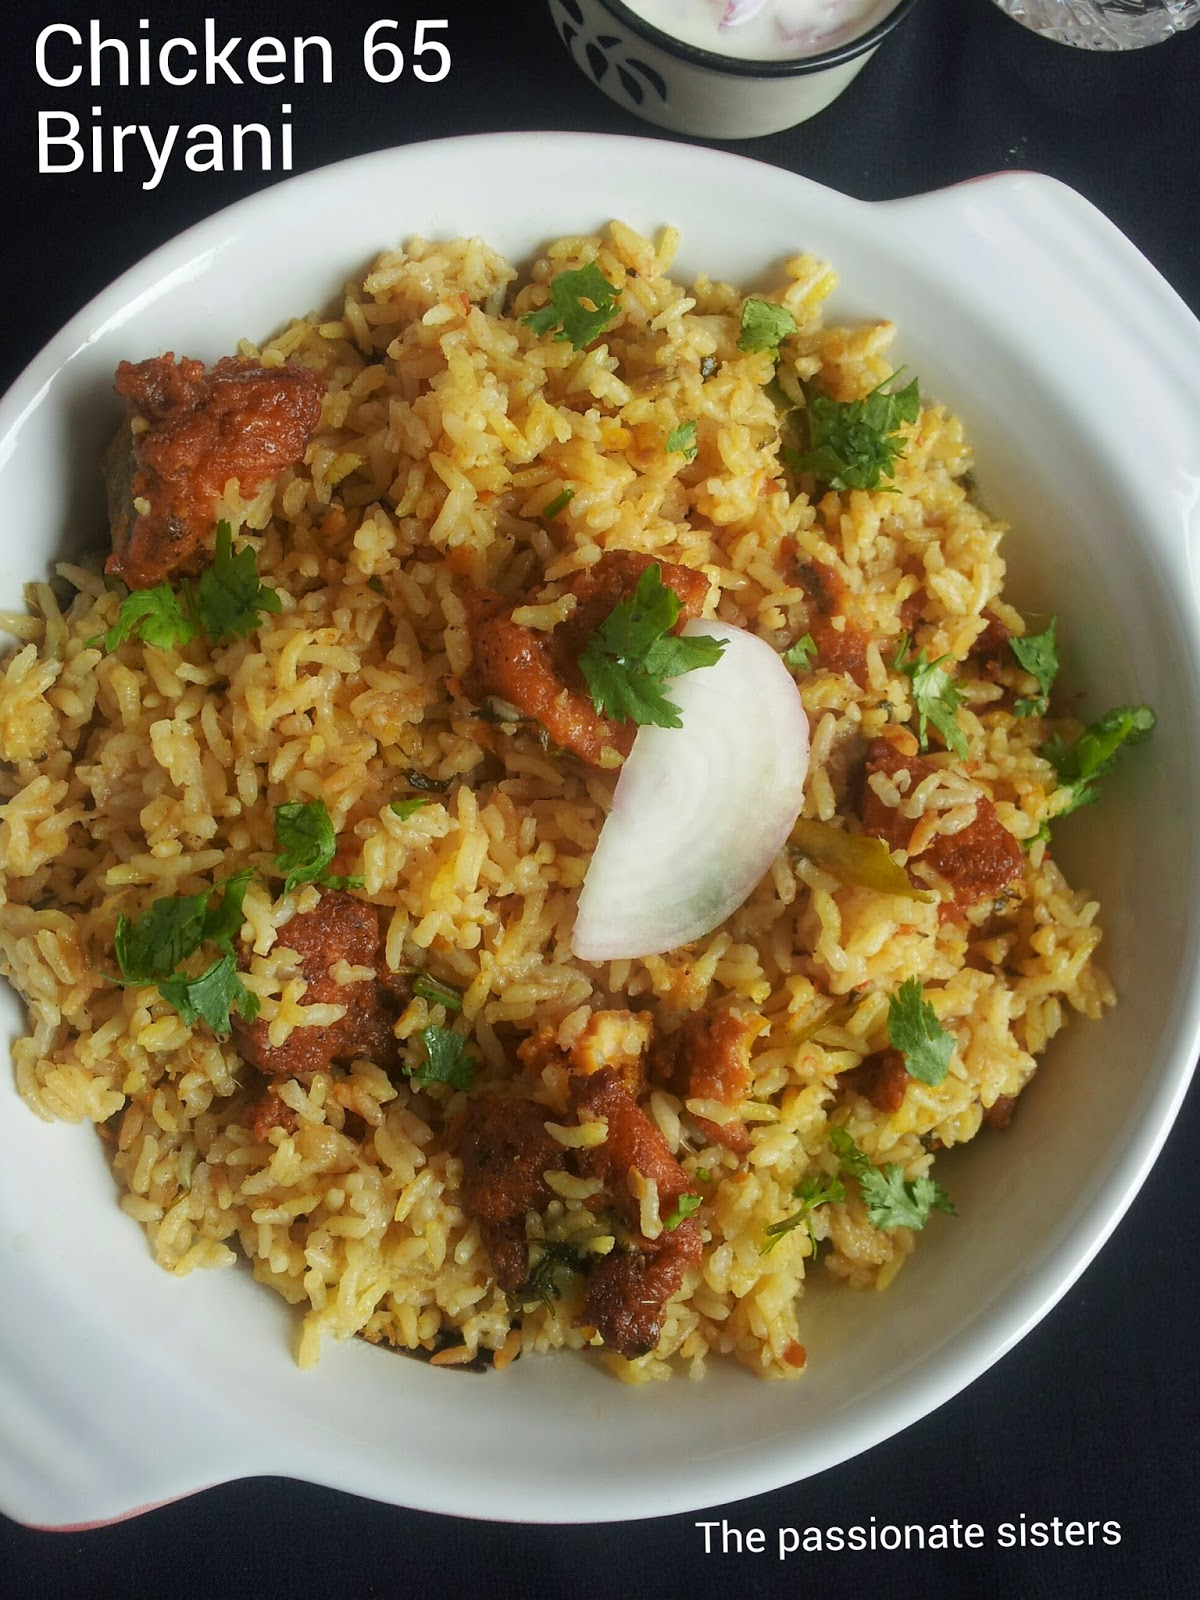 Chicken 65 biryani